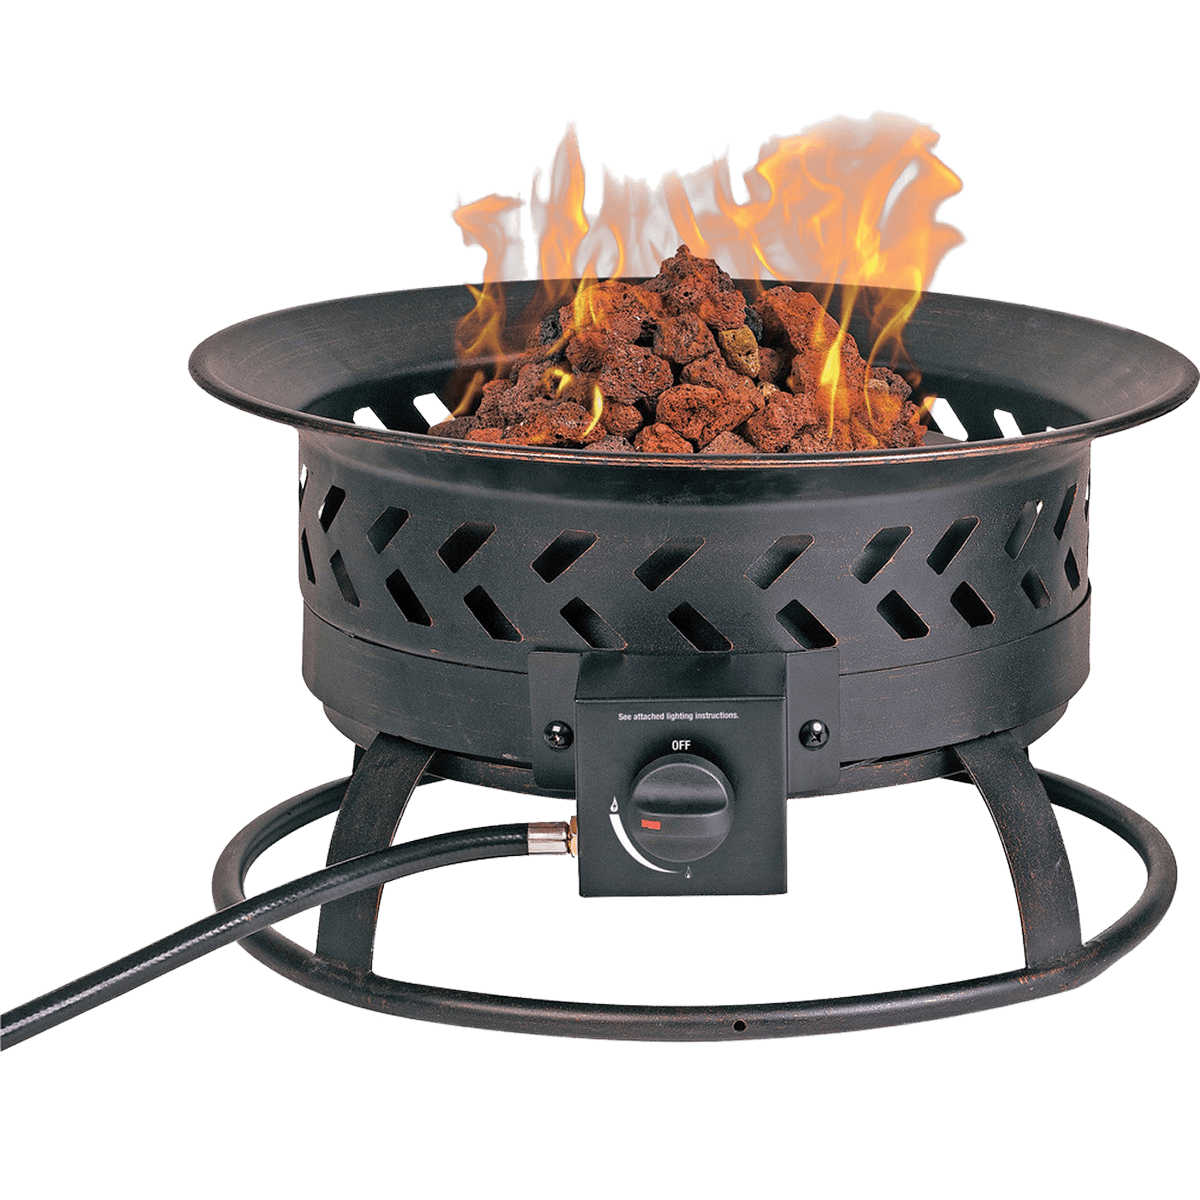 Portable Gas Fire Pits Outdoor: Endless Summer Portable Outdoor Gas Fire Pit